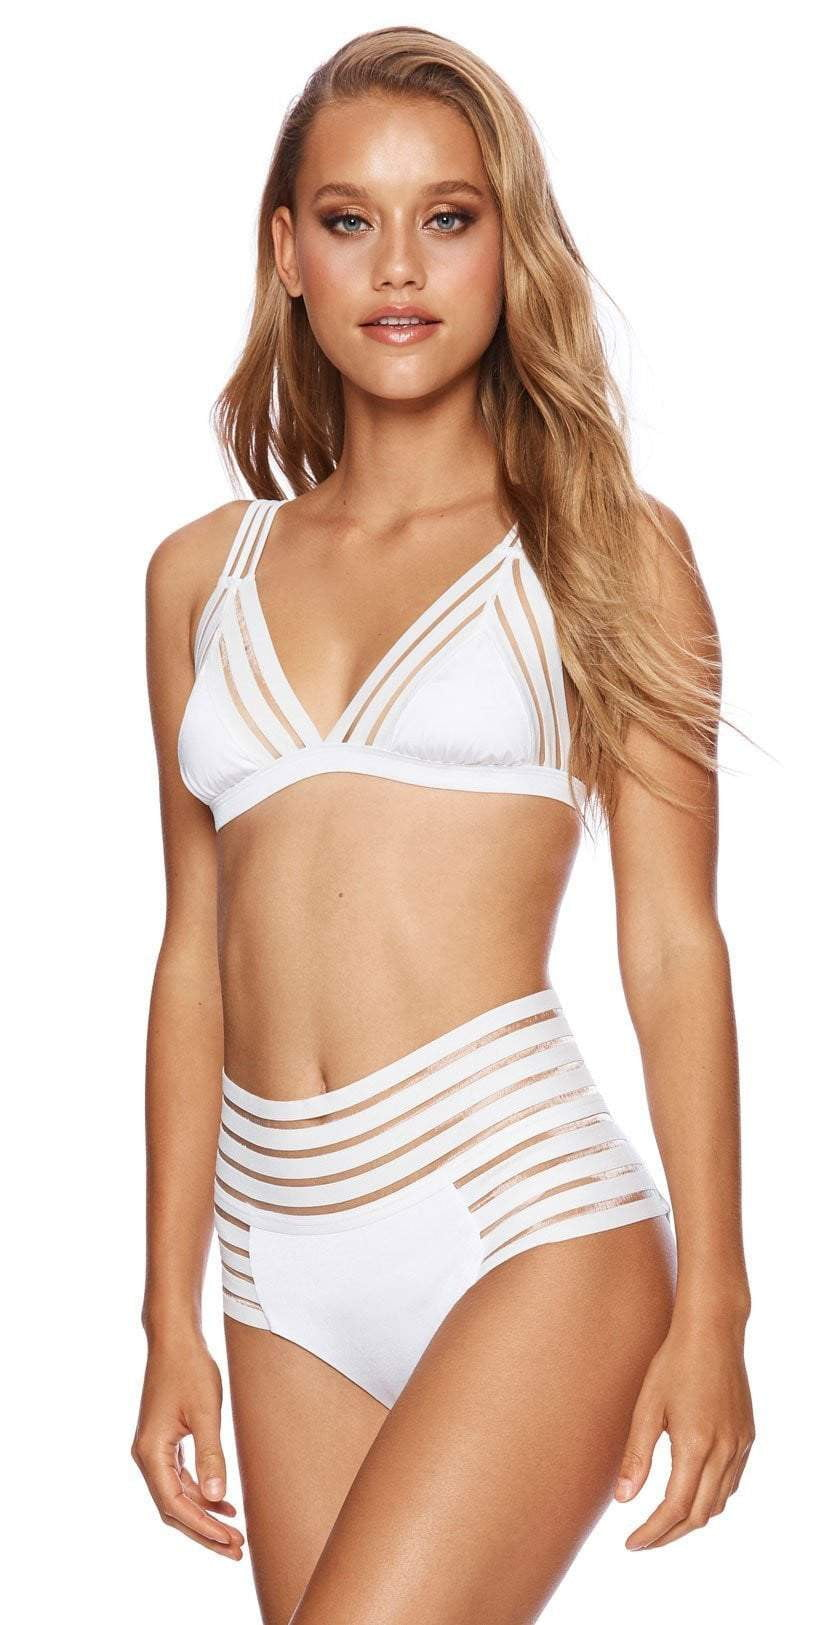 Beach Bunny Sheer Addiction High Waist Bikini Bottom in White B16125B0-WHT front view of top and bottom